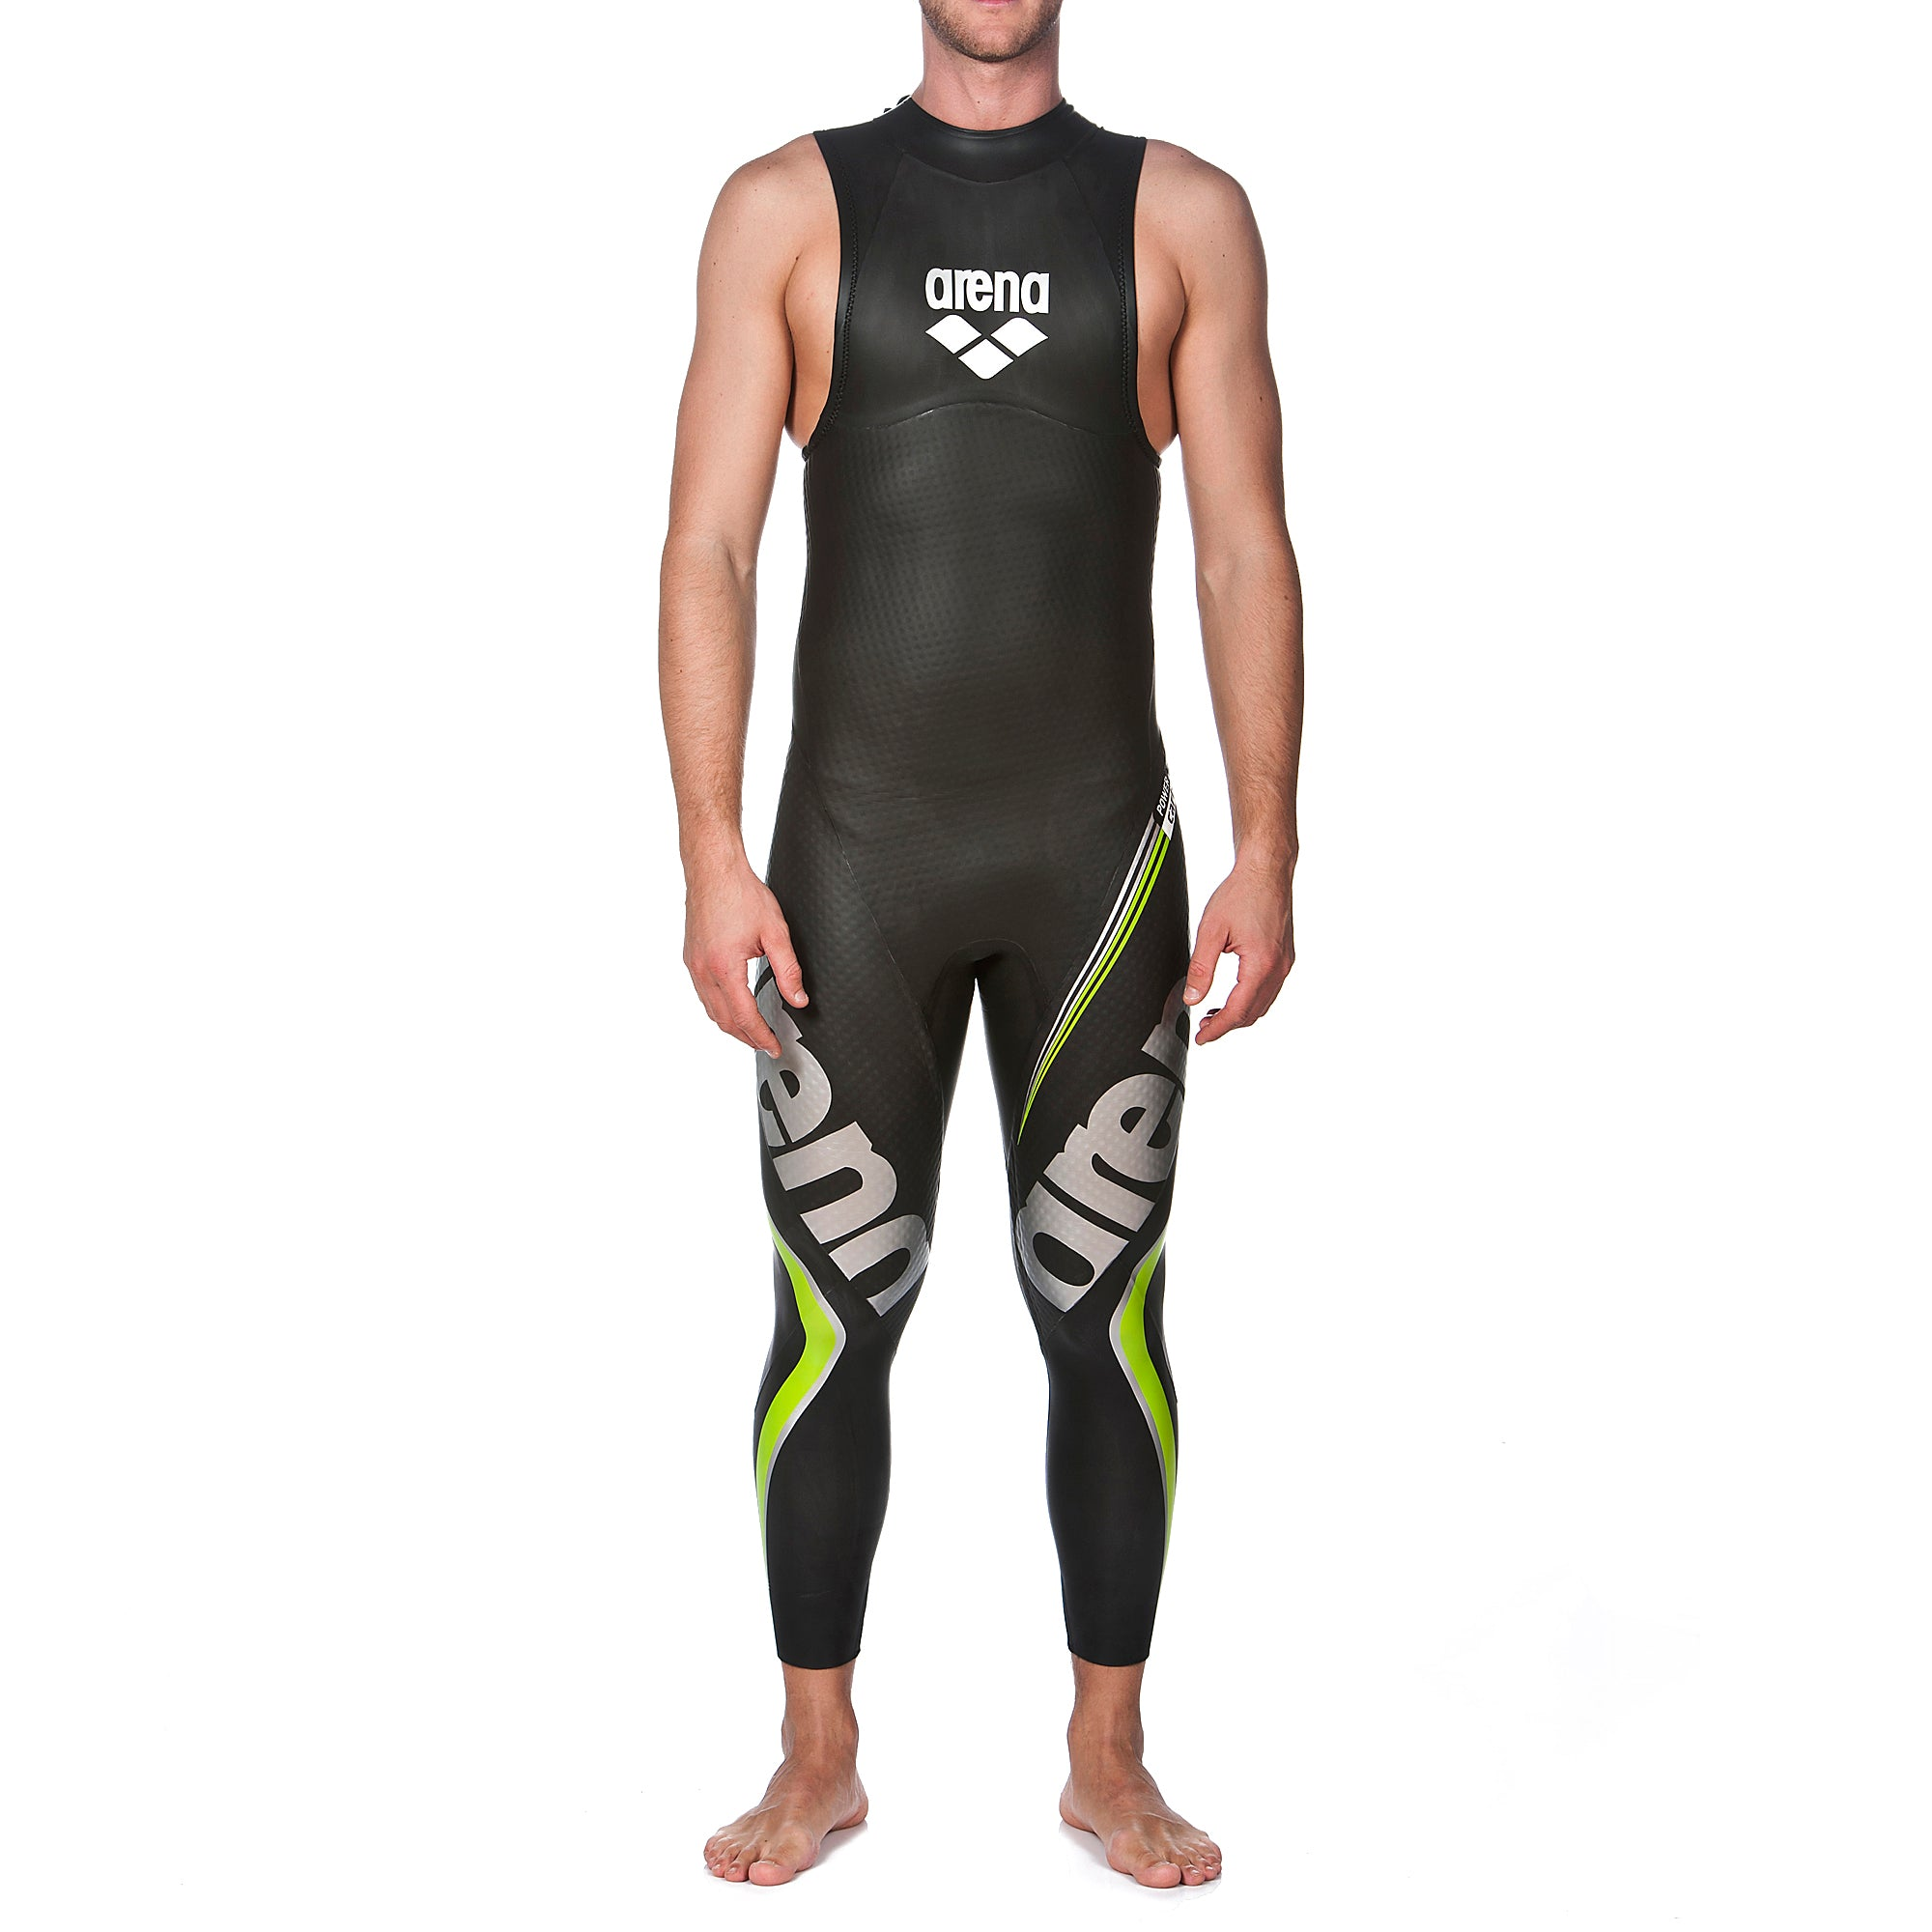 ARENA MAN TRIWETSUIT CARBON SLEEVELESS 2A944